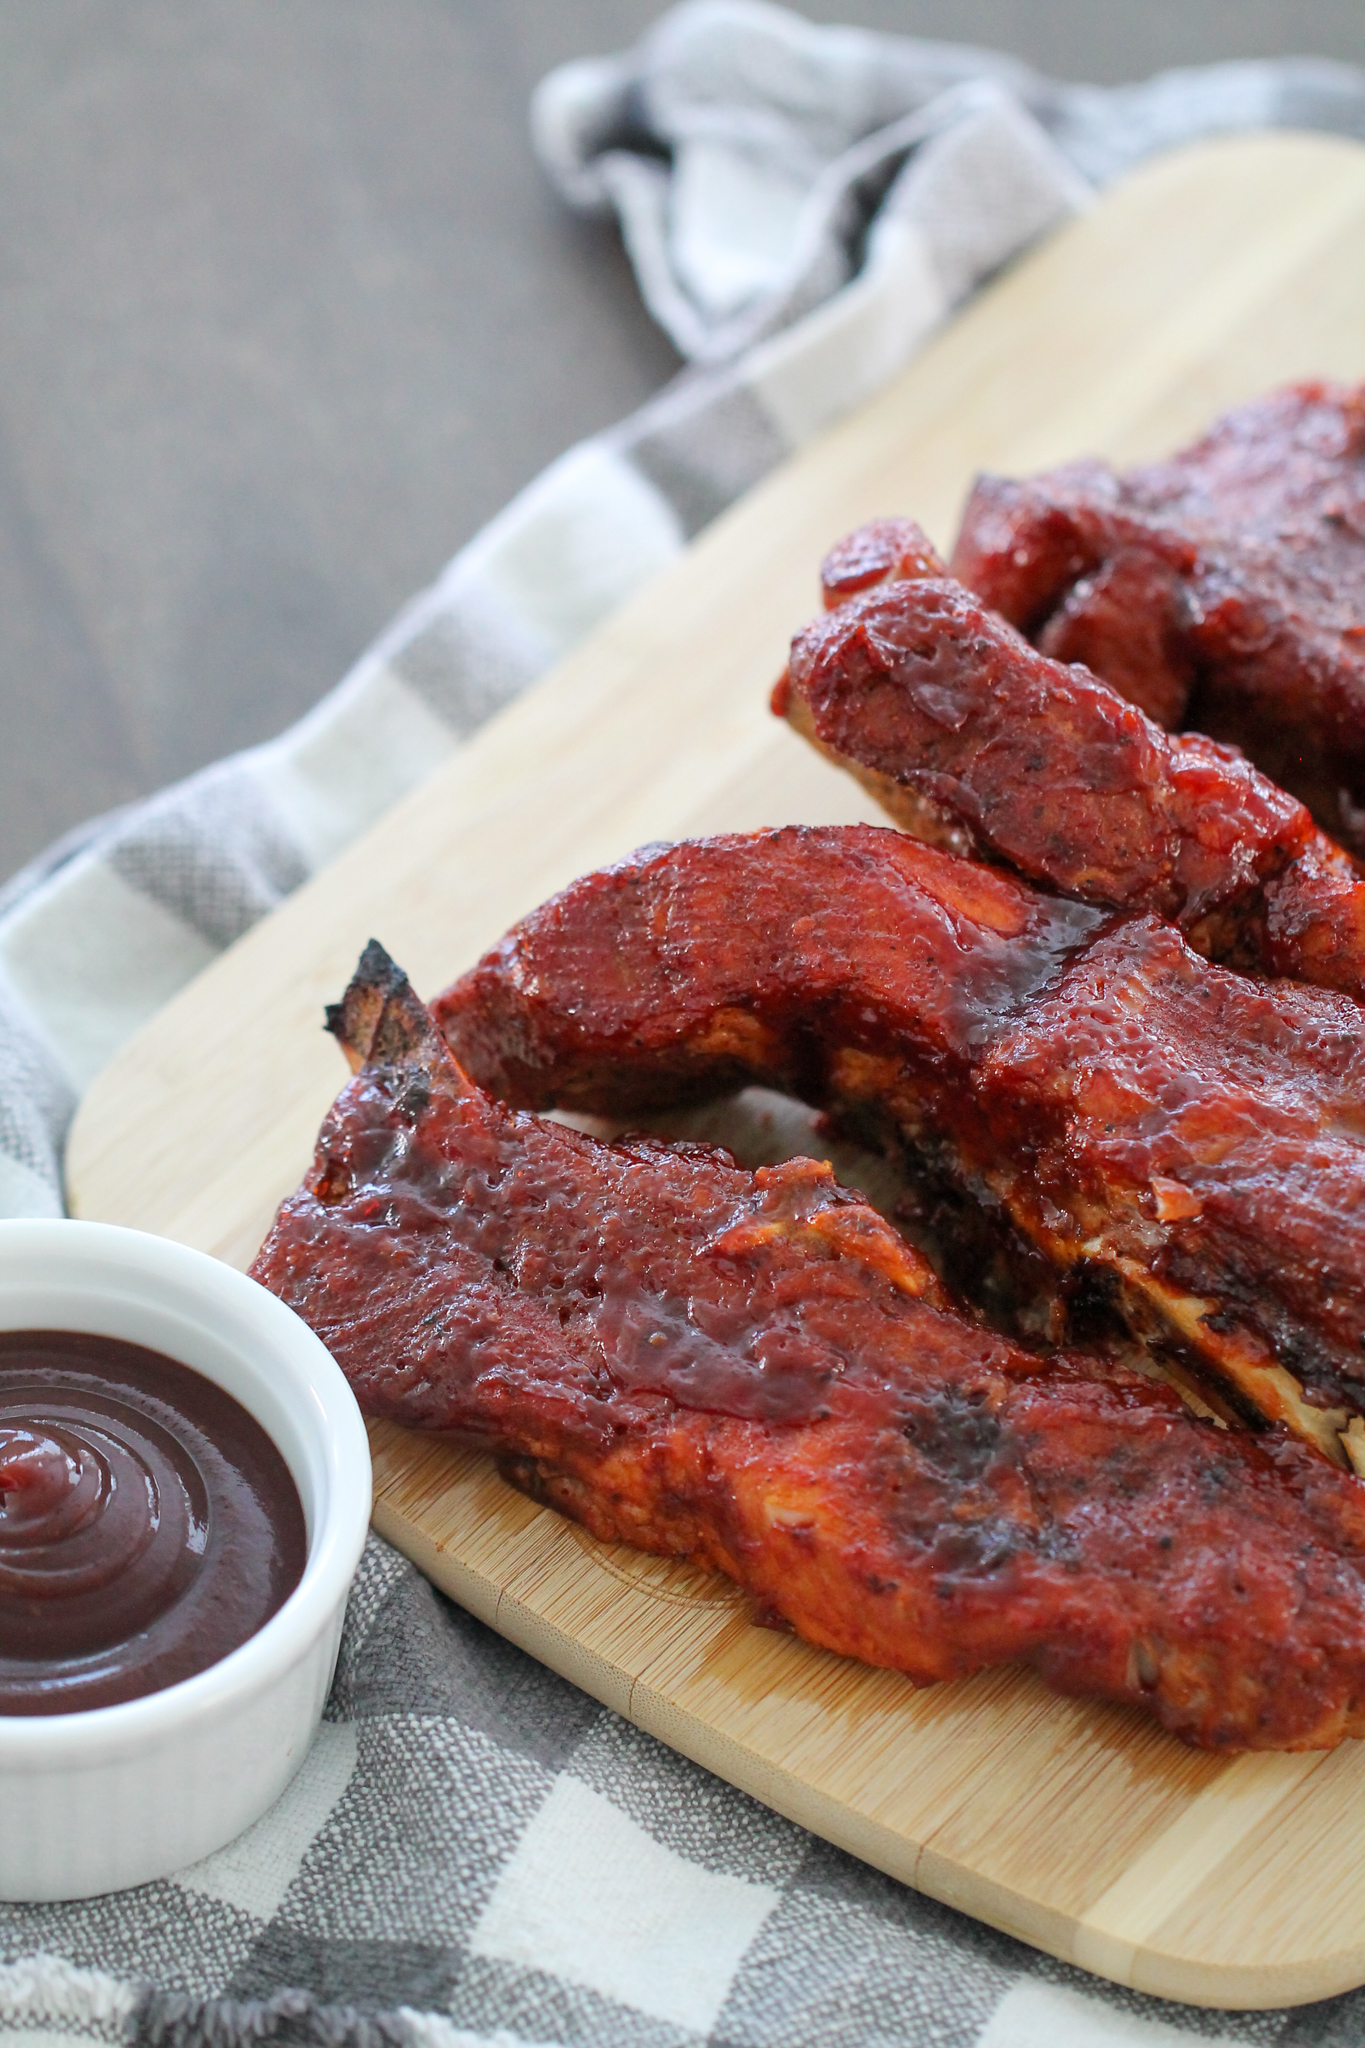 Instant Pot BBQ Country Ribs on a wooden cutting board with a side of BBQ Sauce